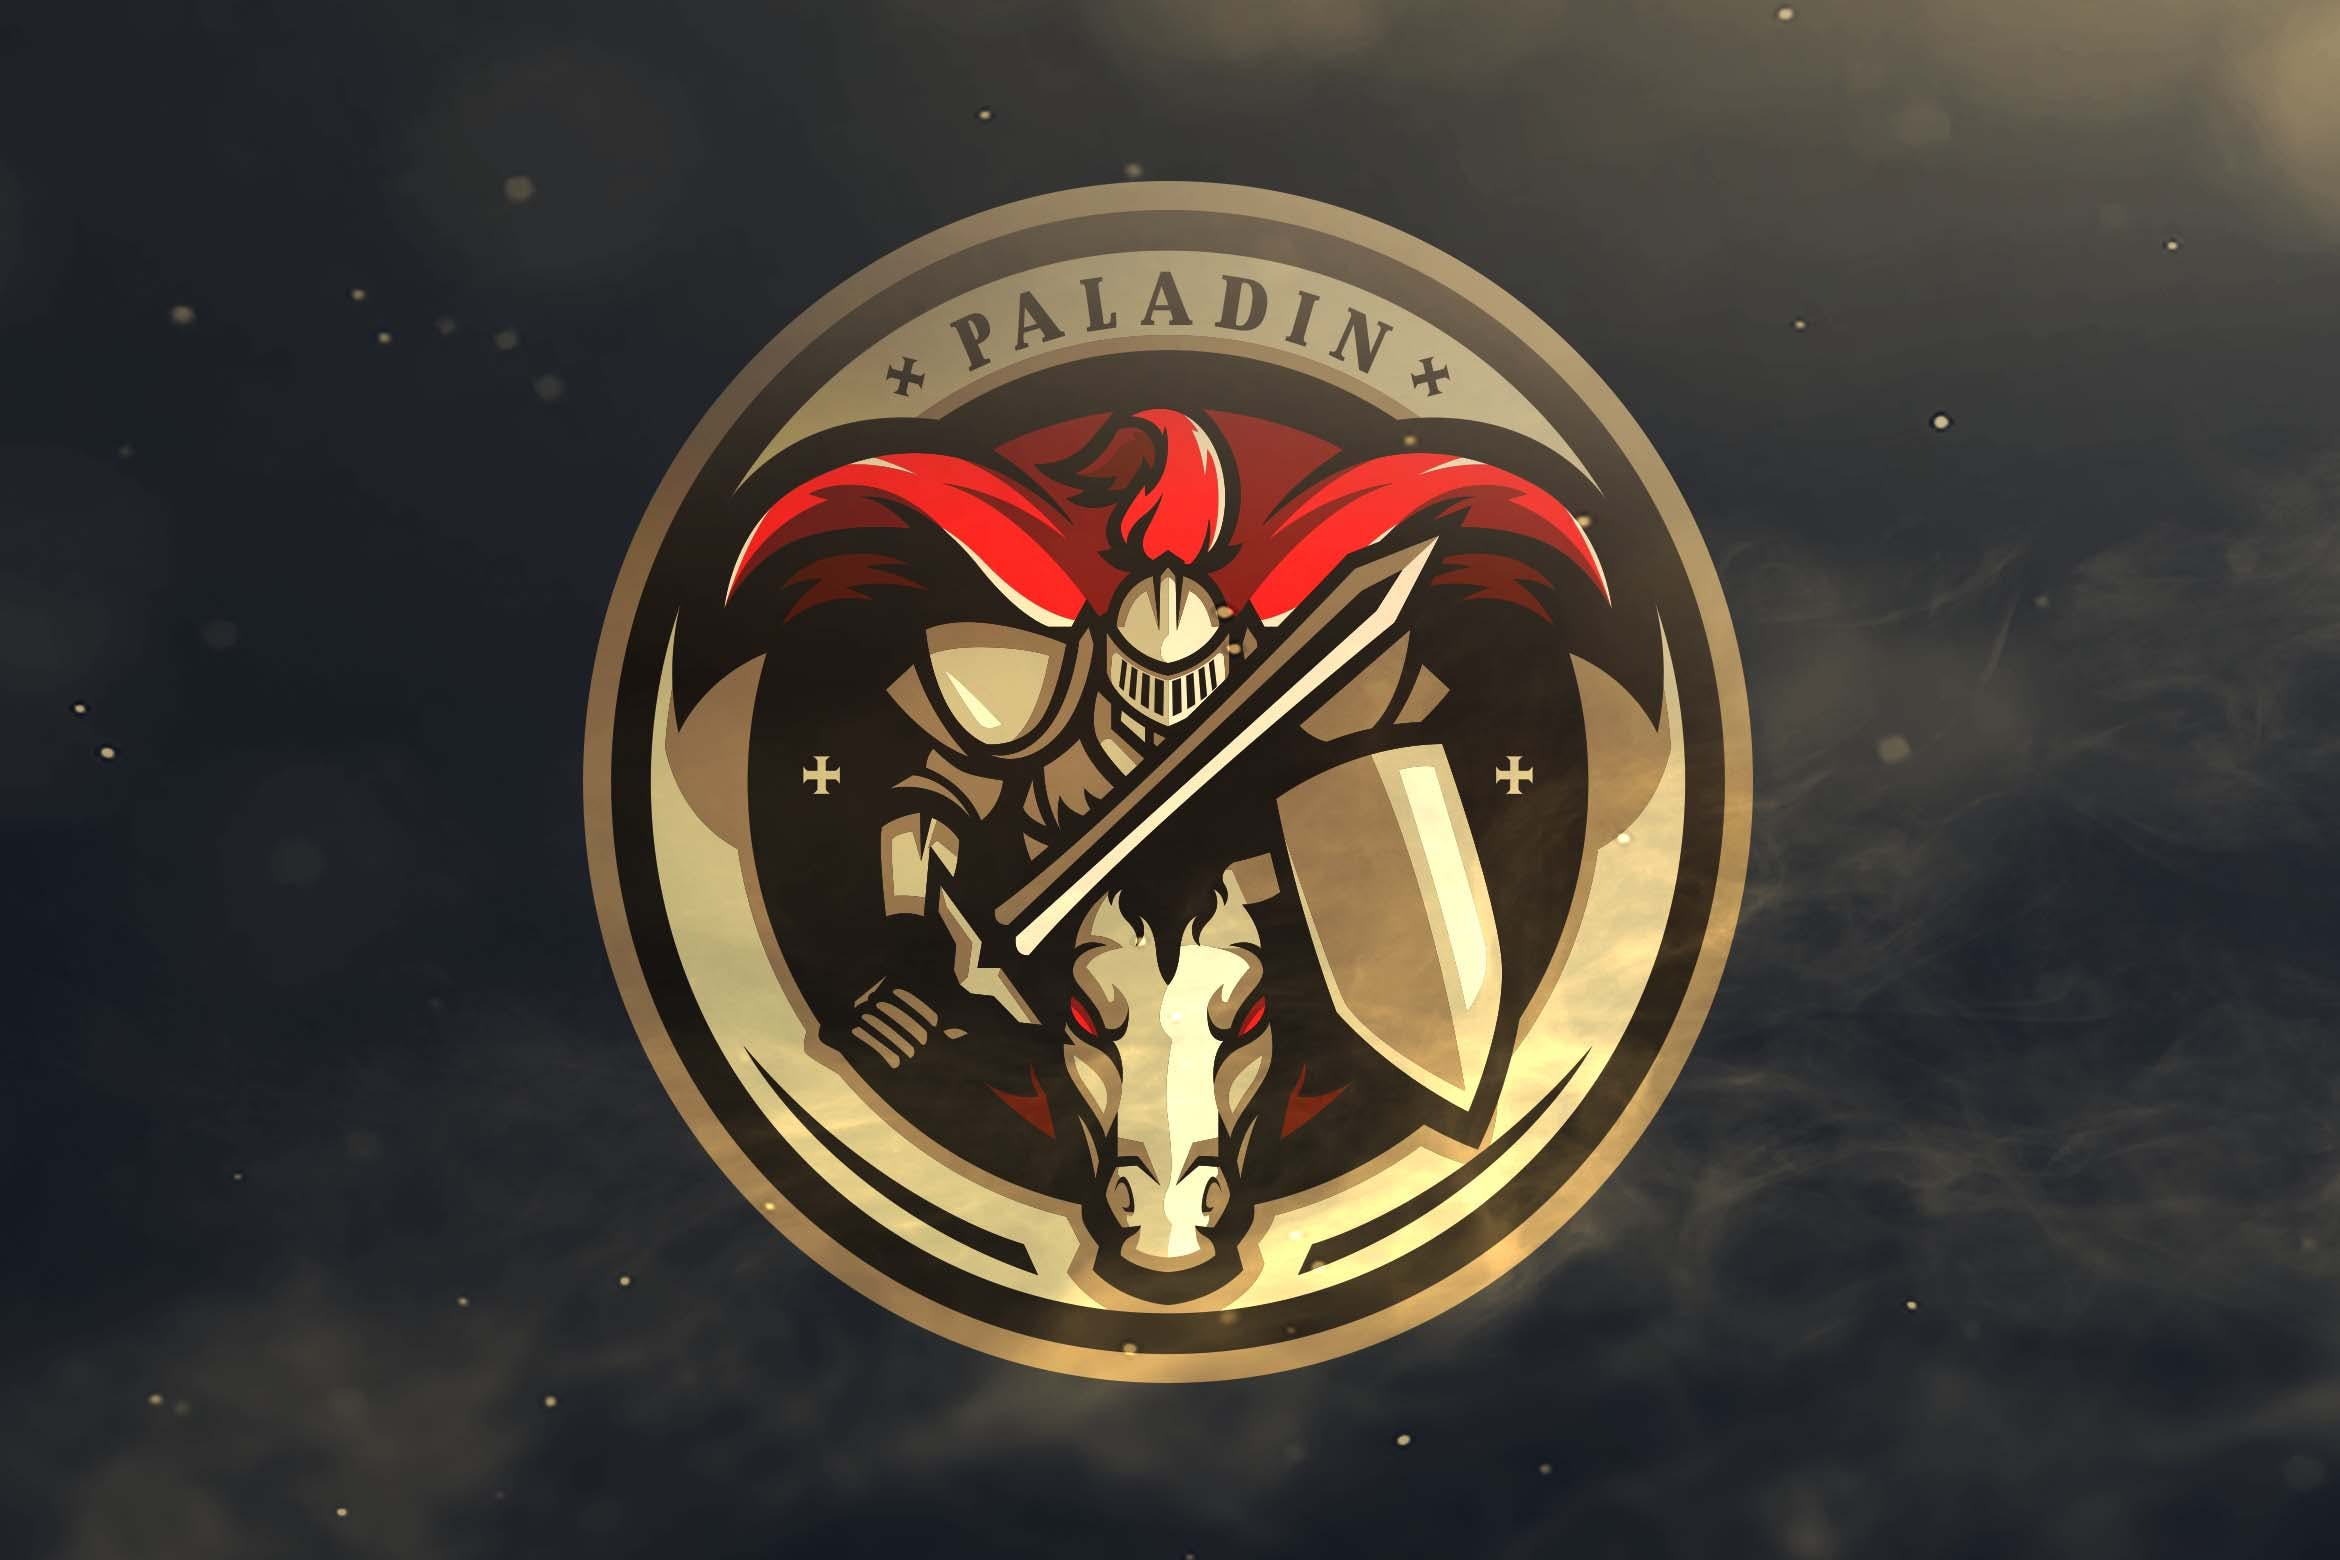 Paladin Sport and Esports Logos by ovozdigital on Envato Elements.